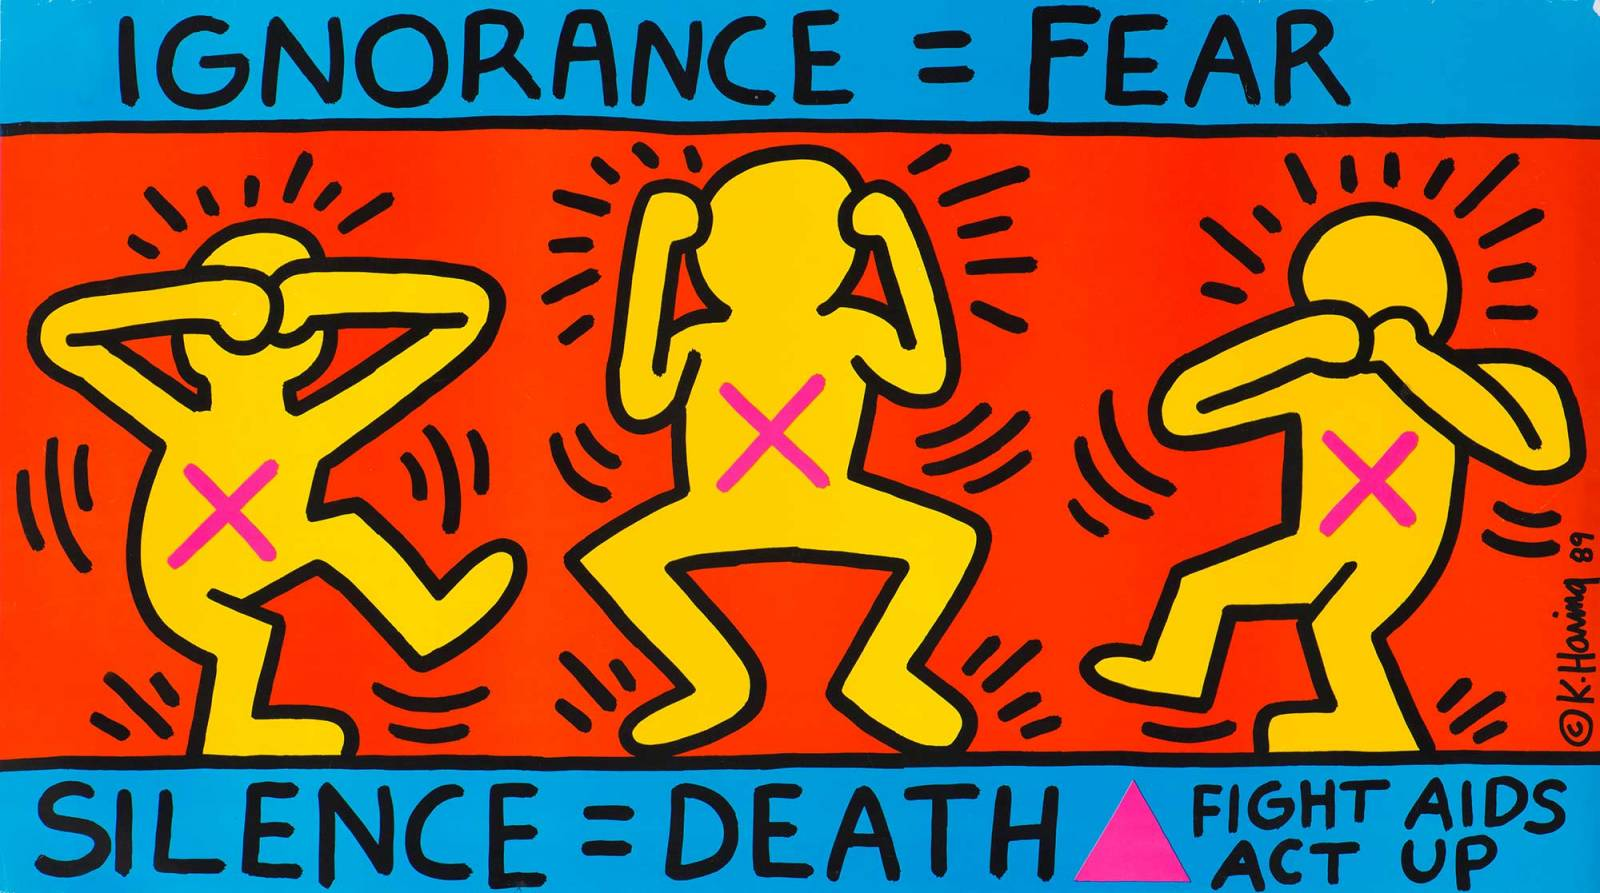 """Ignorance = Fear"", Keith Haring, 1989 (Fot. Collection Noirmontartproduction, Paryż)"